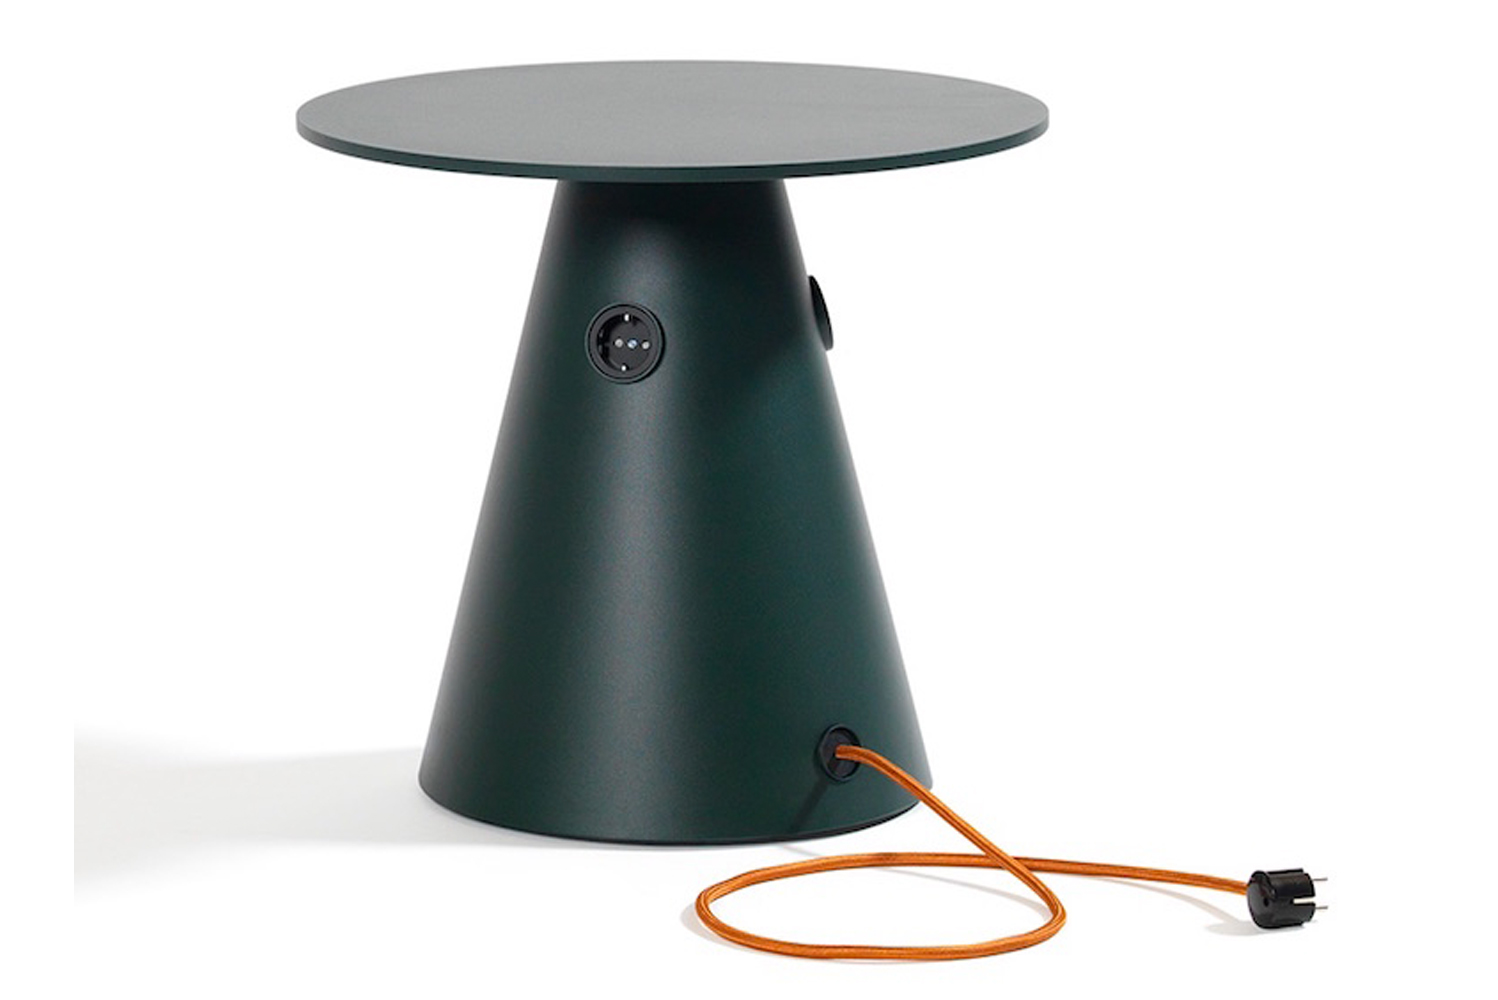 Introducing the Jack table by Blå Station.